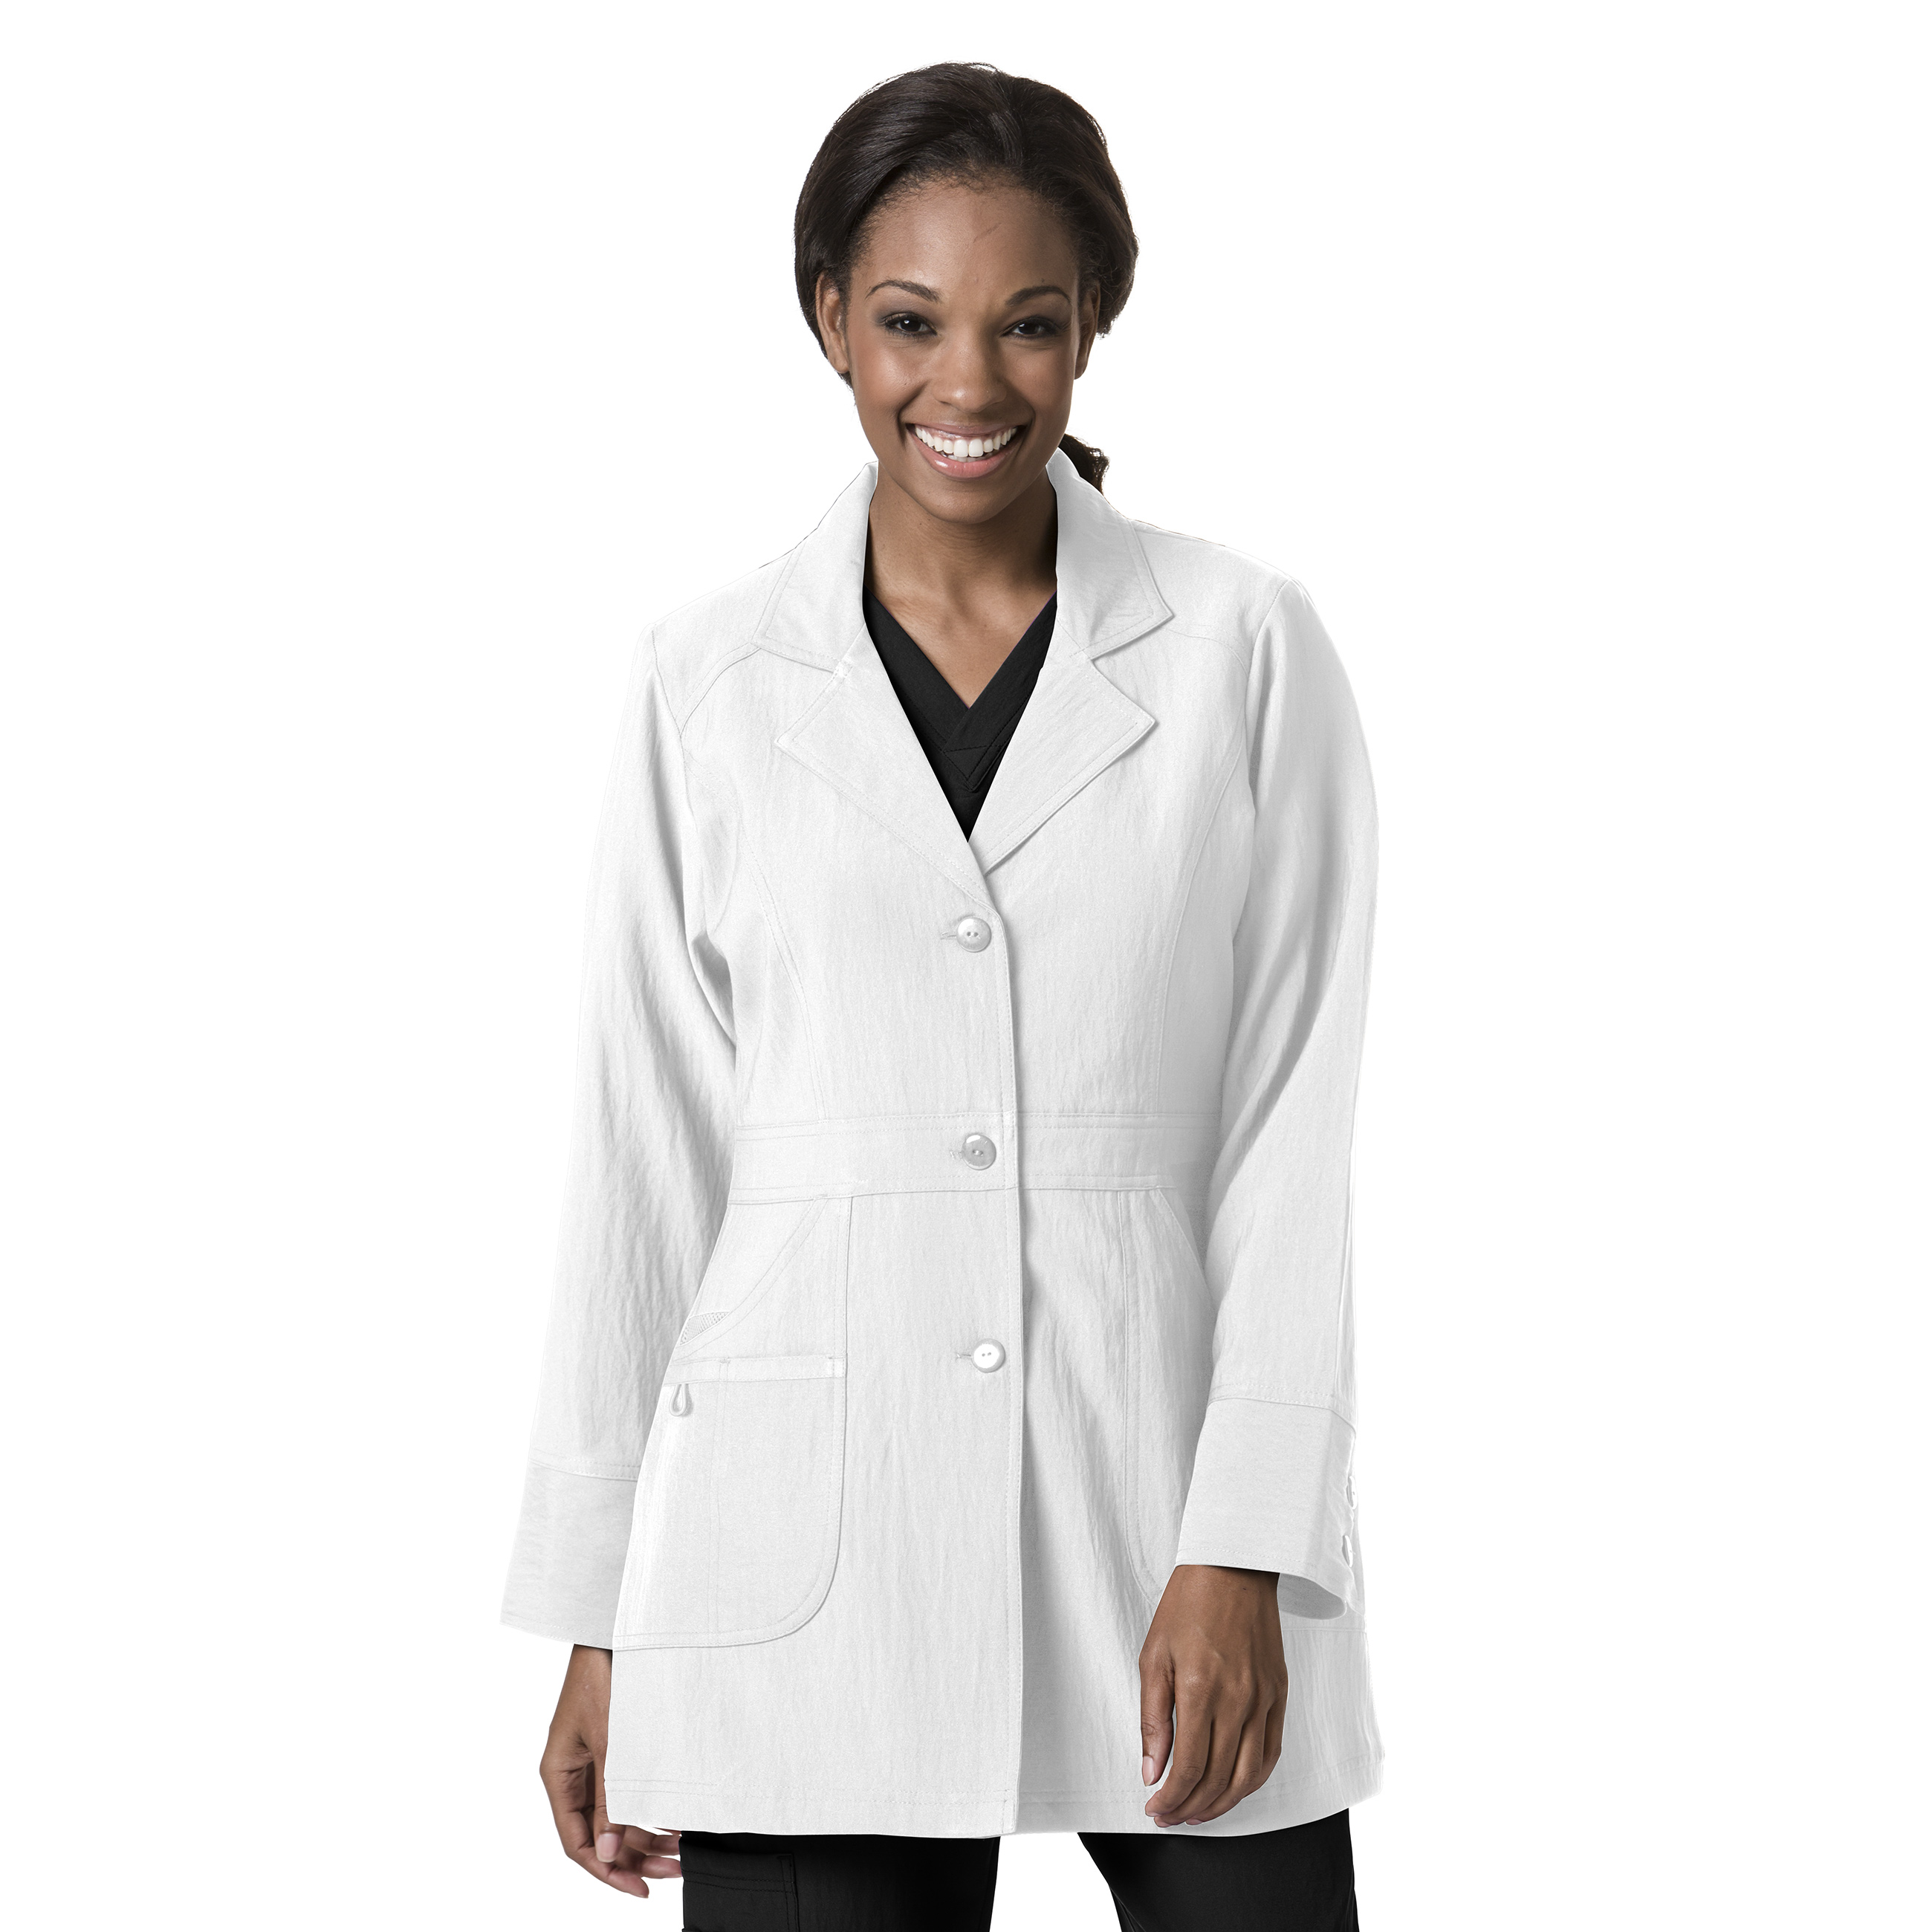 LabCoat-WW-7004